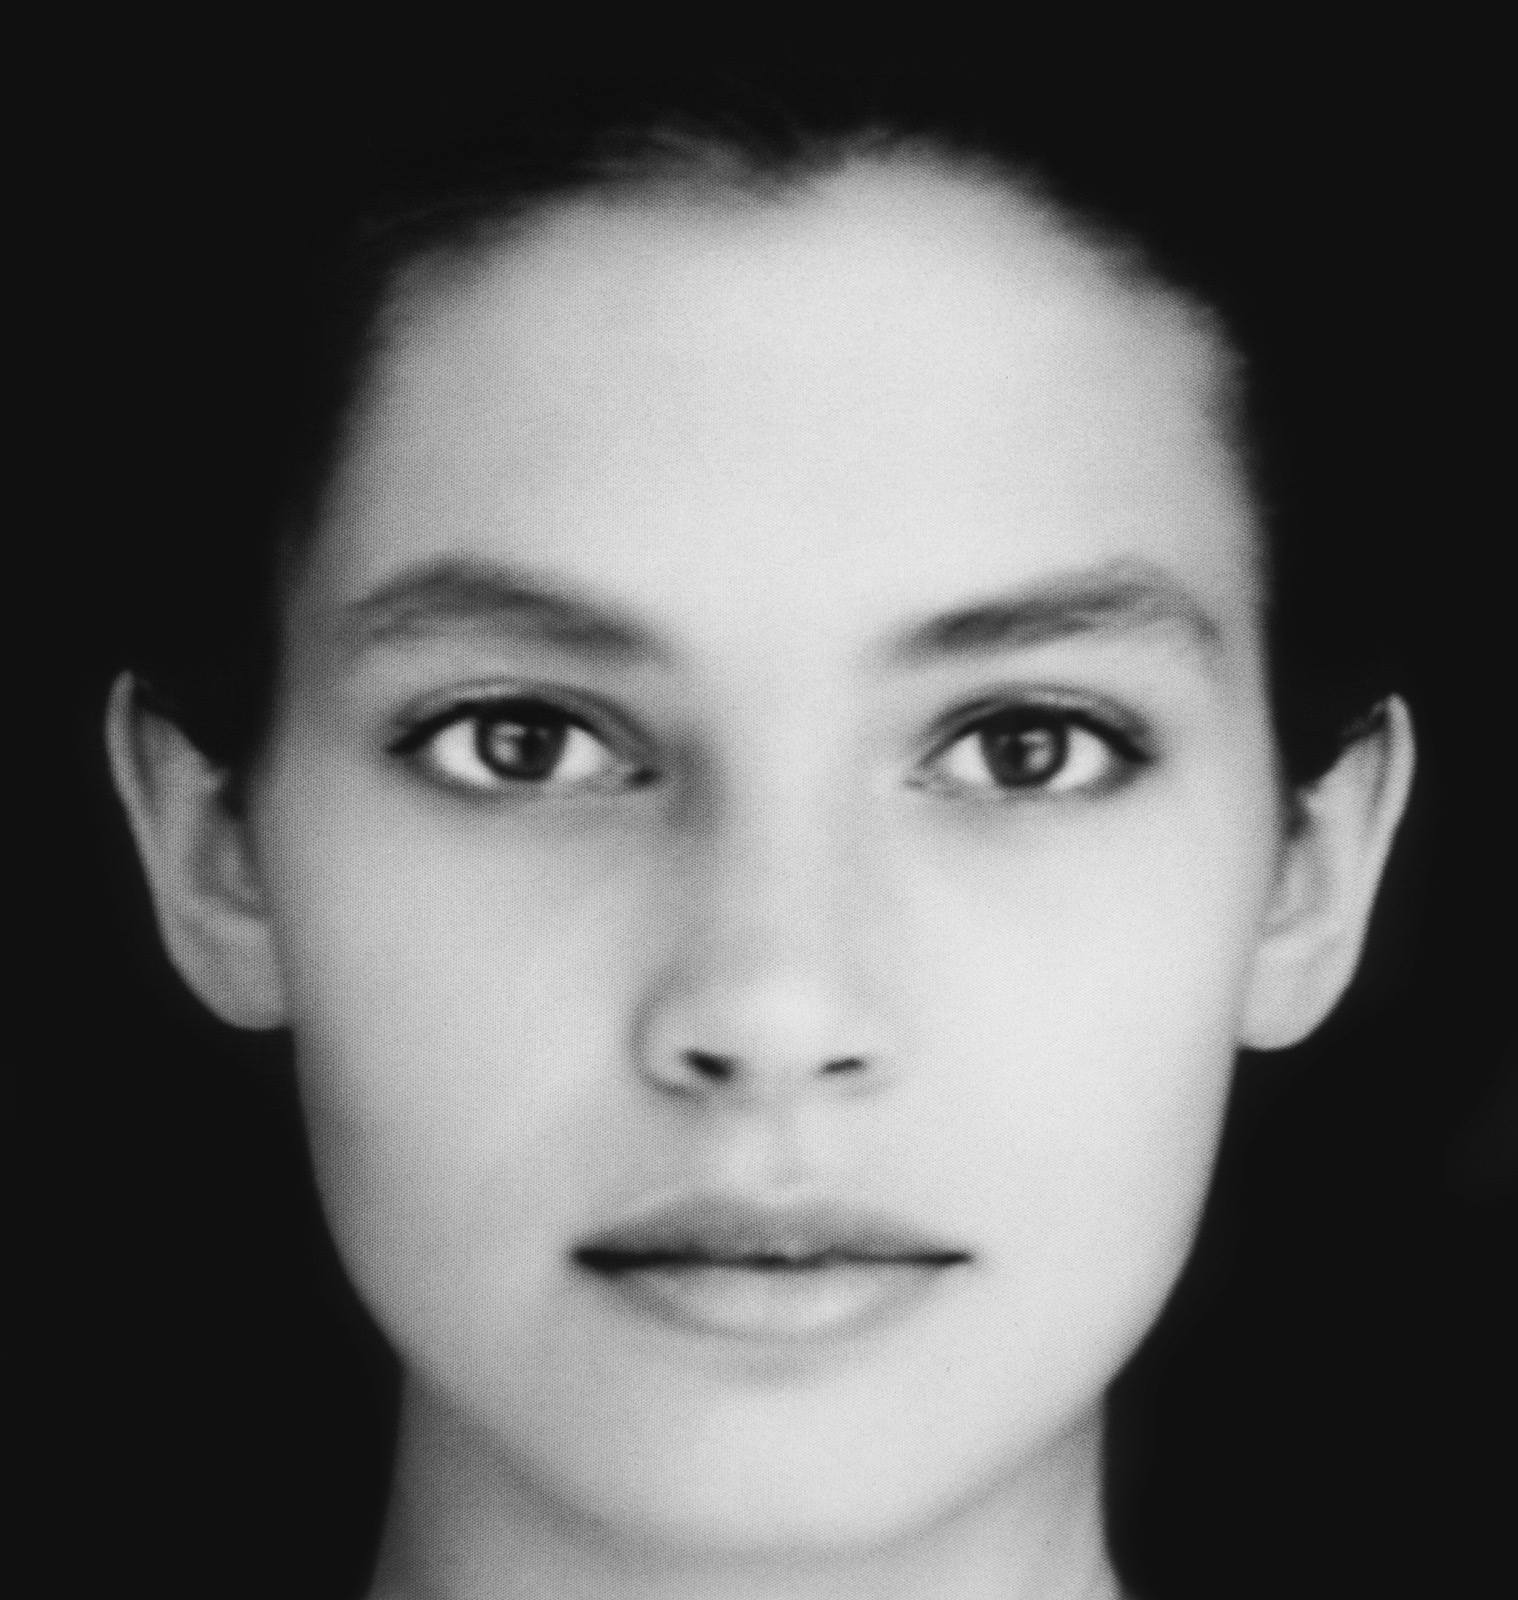 Before DNA kits and deepfakes, Nancy Burson used morphed images to reveal fundamental truths